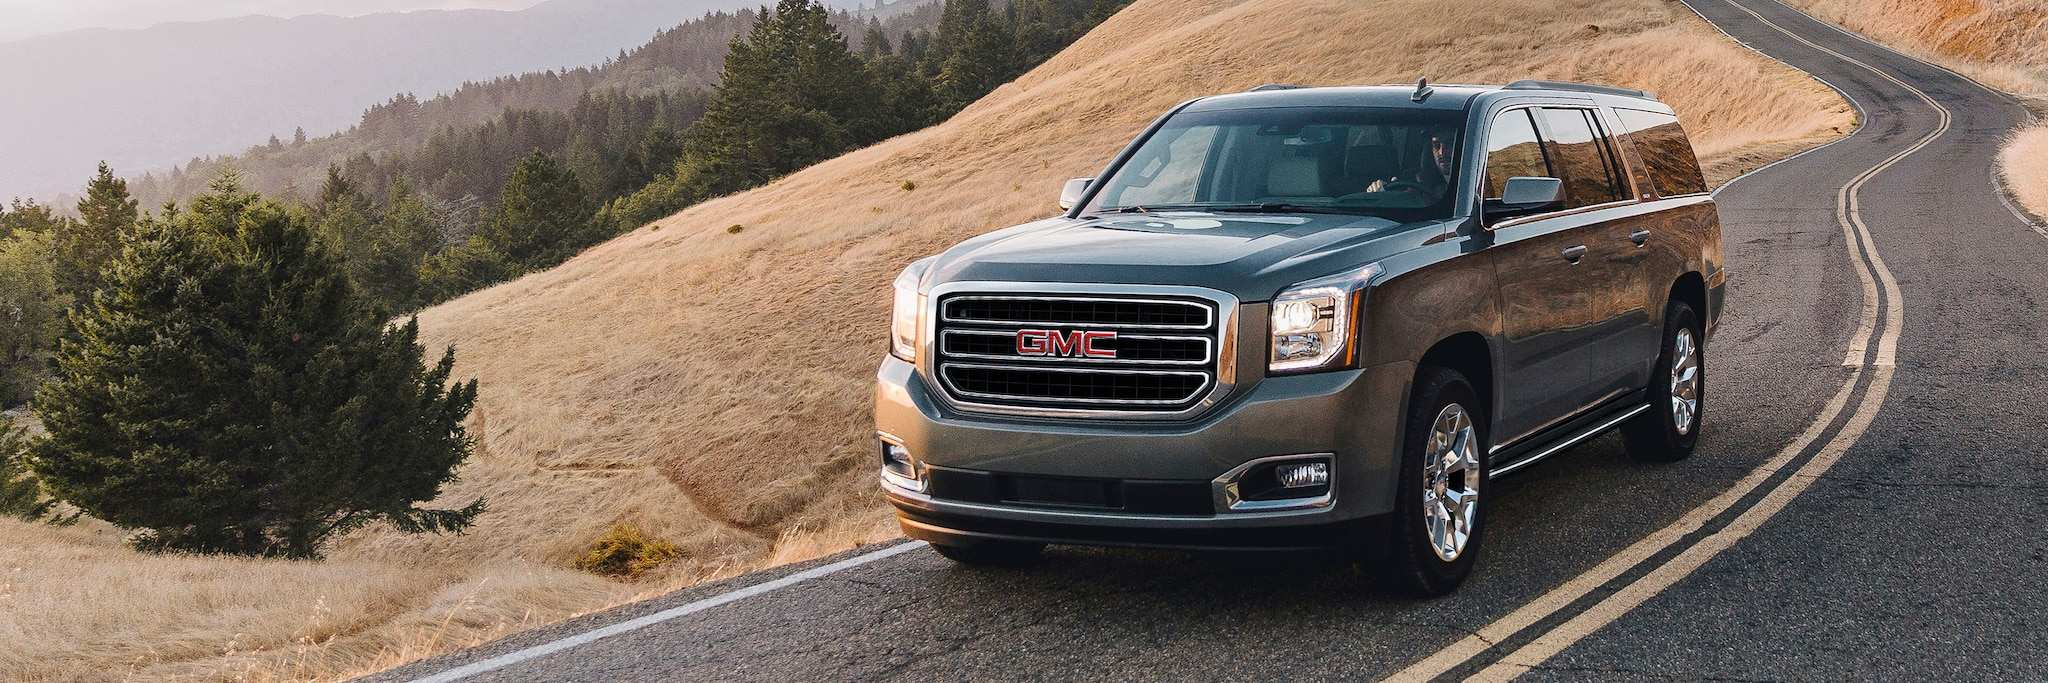 50 Great What Does The 2020 Gmc Yukon Look Like Ratings for What Does The 2020 Gmc Yukon Look Like